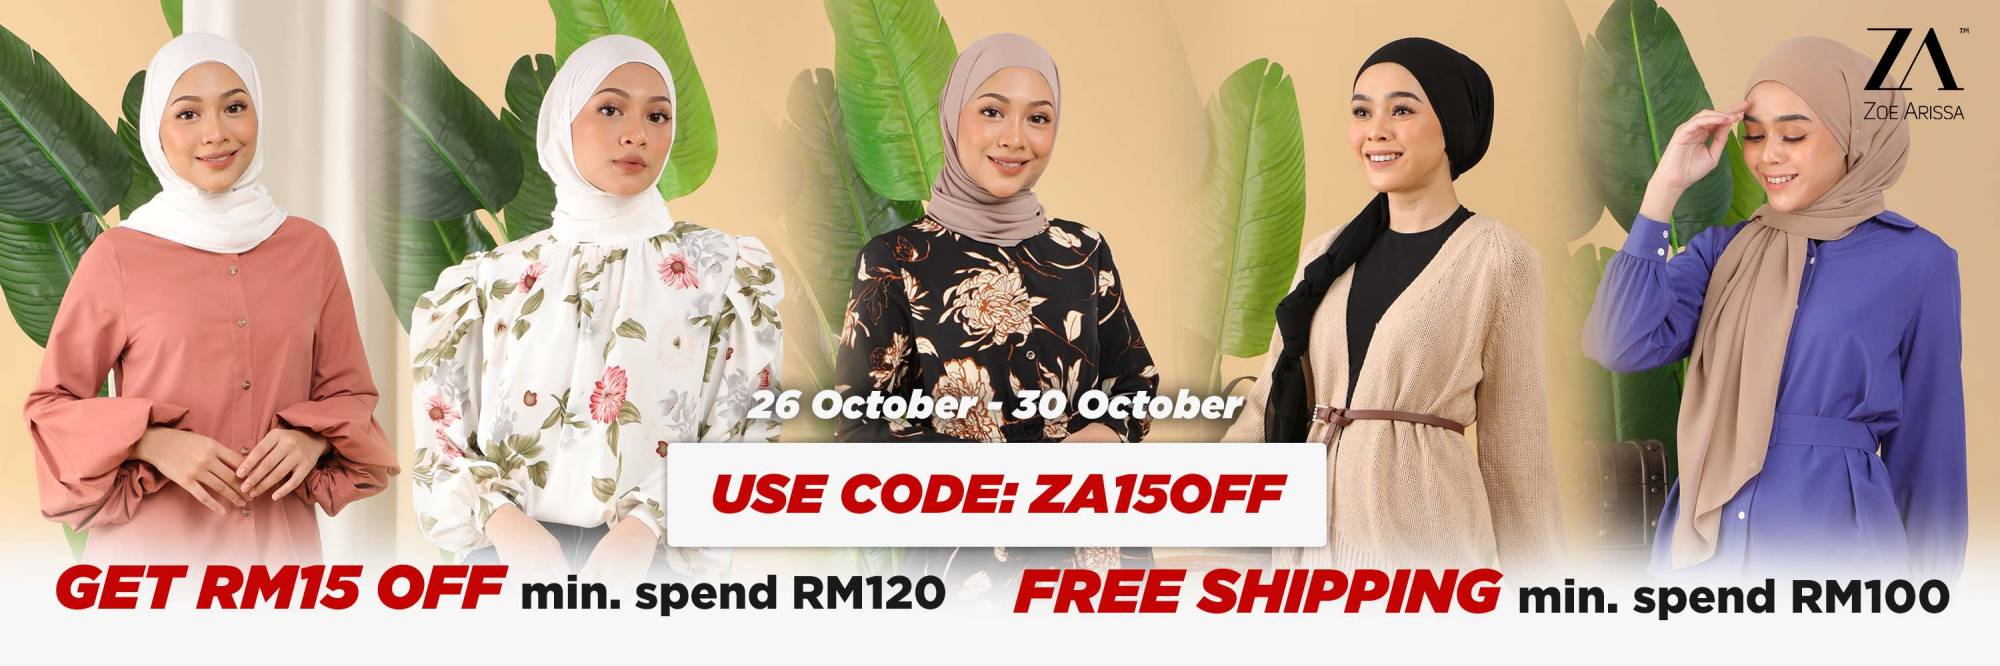 Spend RM120 to get RM15 OFF